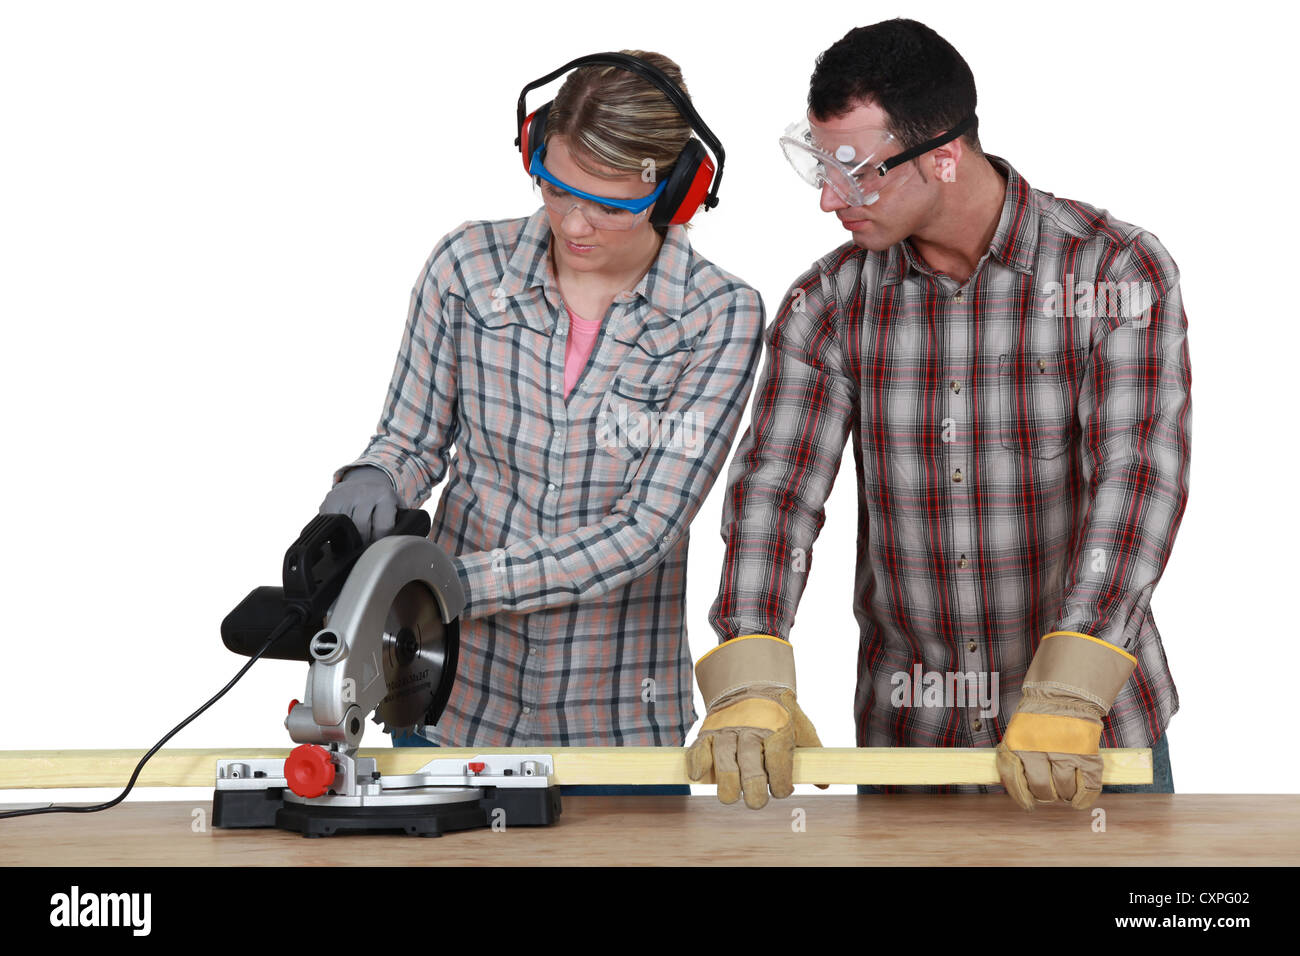 Apprentice with circular saw - Stock Image